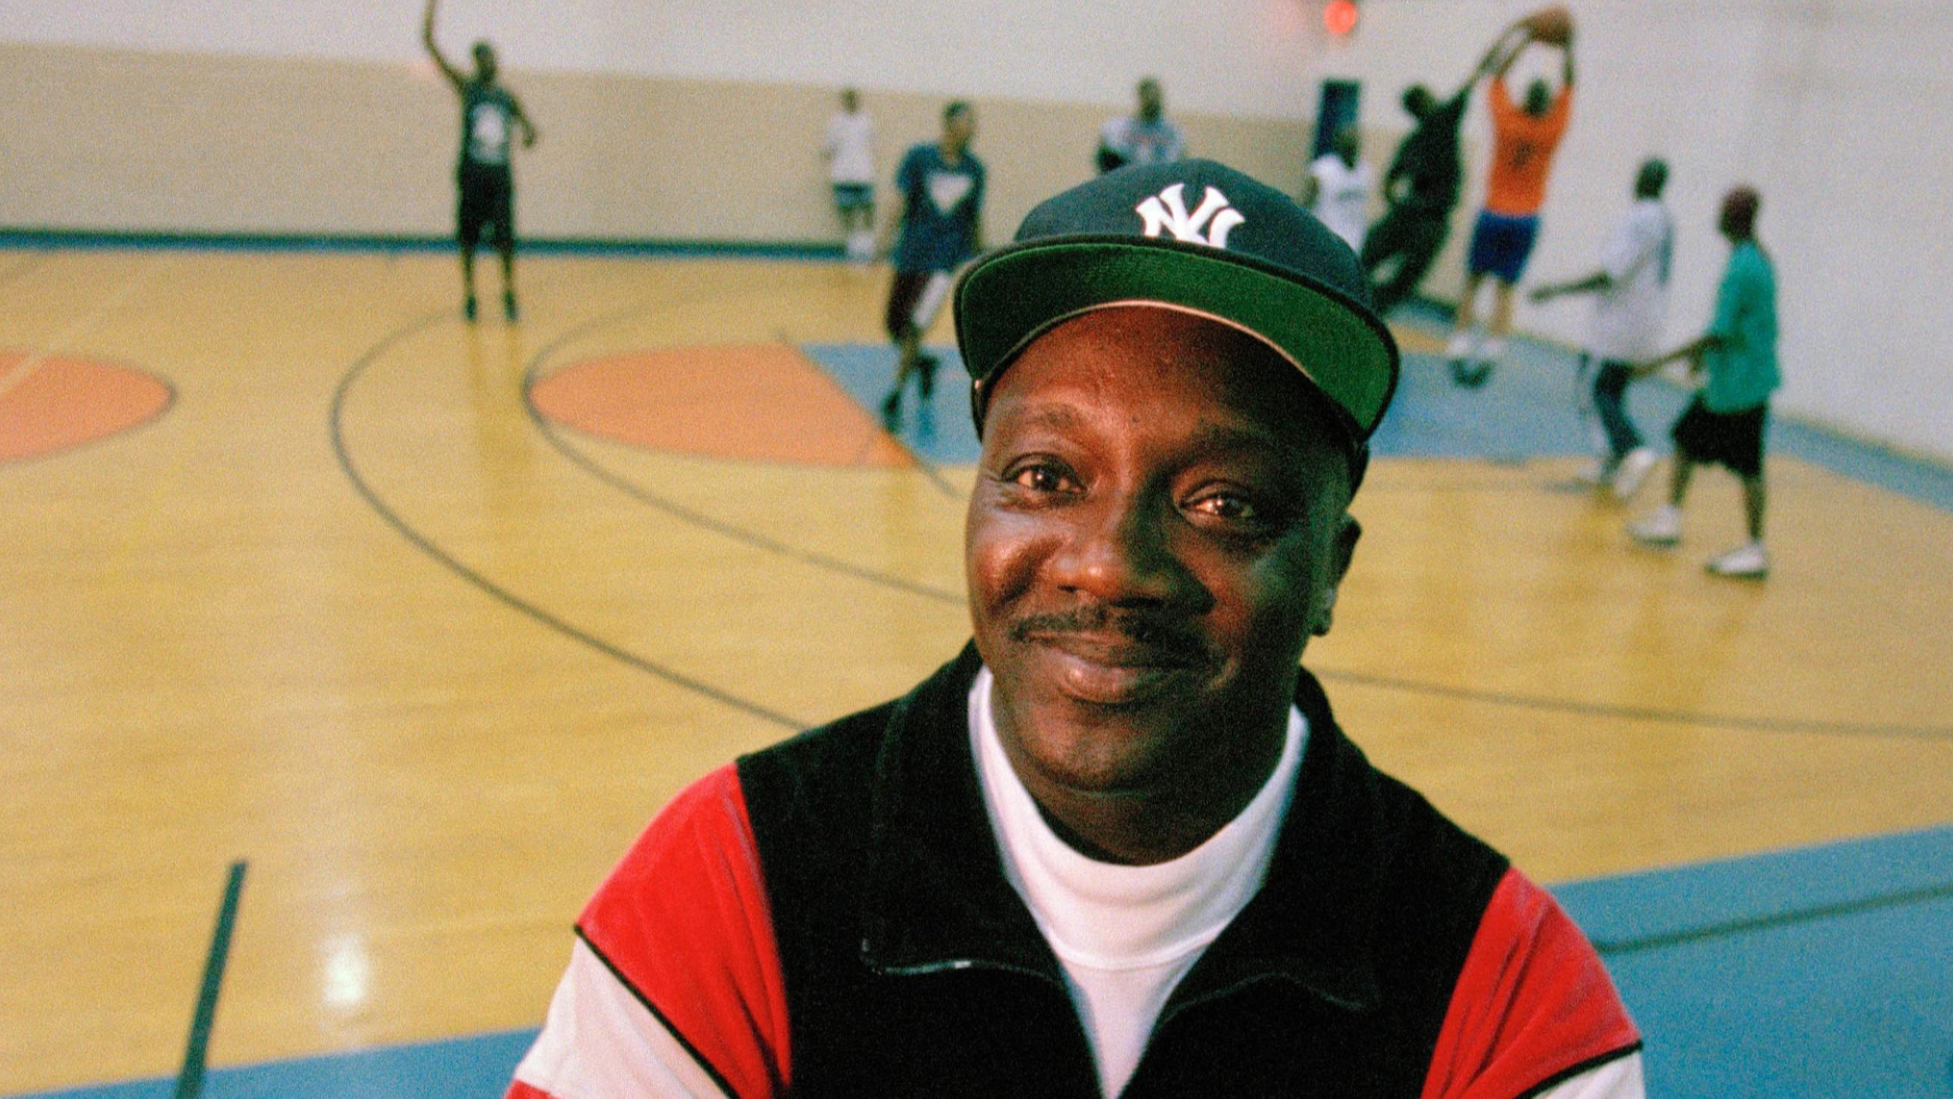 Source: https://www.nytimes.com/2012/05/03/nyregion/greg-jackson-brooklyn-youth-mentor-dies-at-60.html, Greg Jackson, director of the Brownsville Recreation Center.Credit...Chang W. Lee/The New York Times